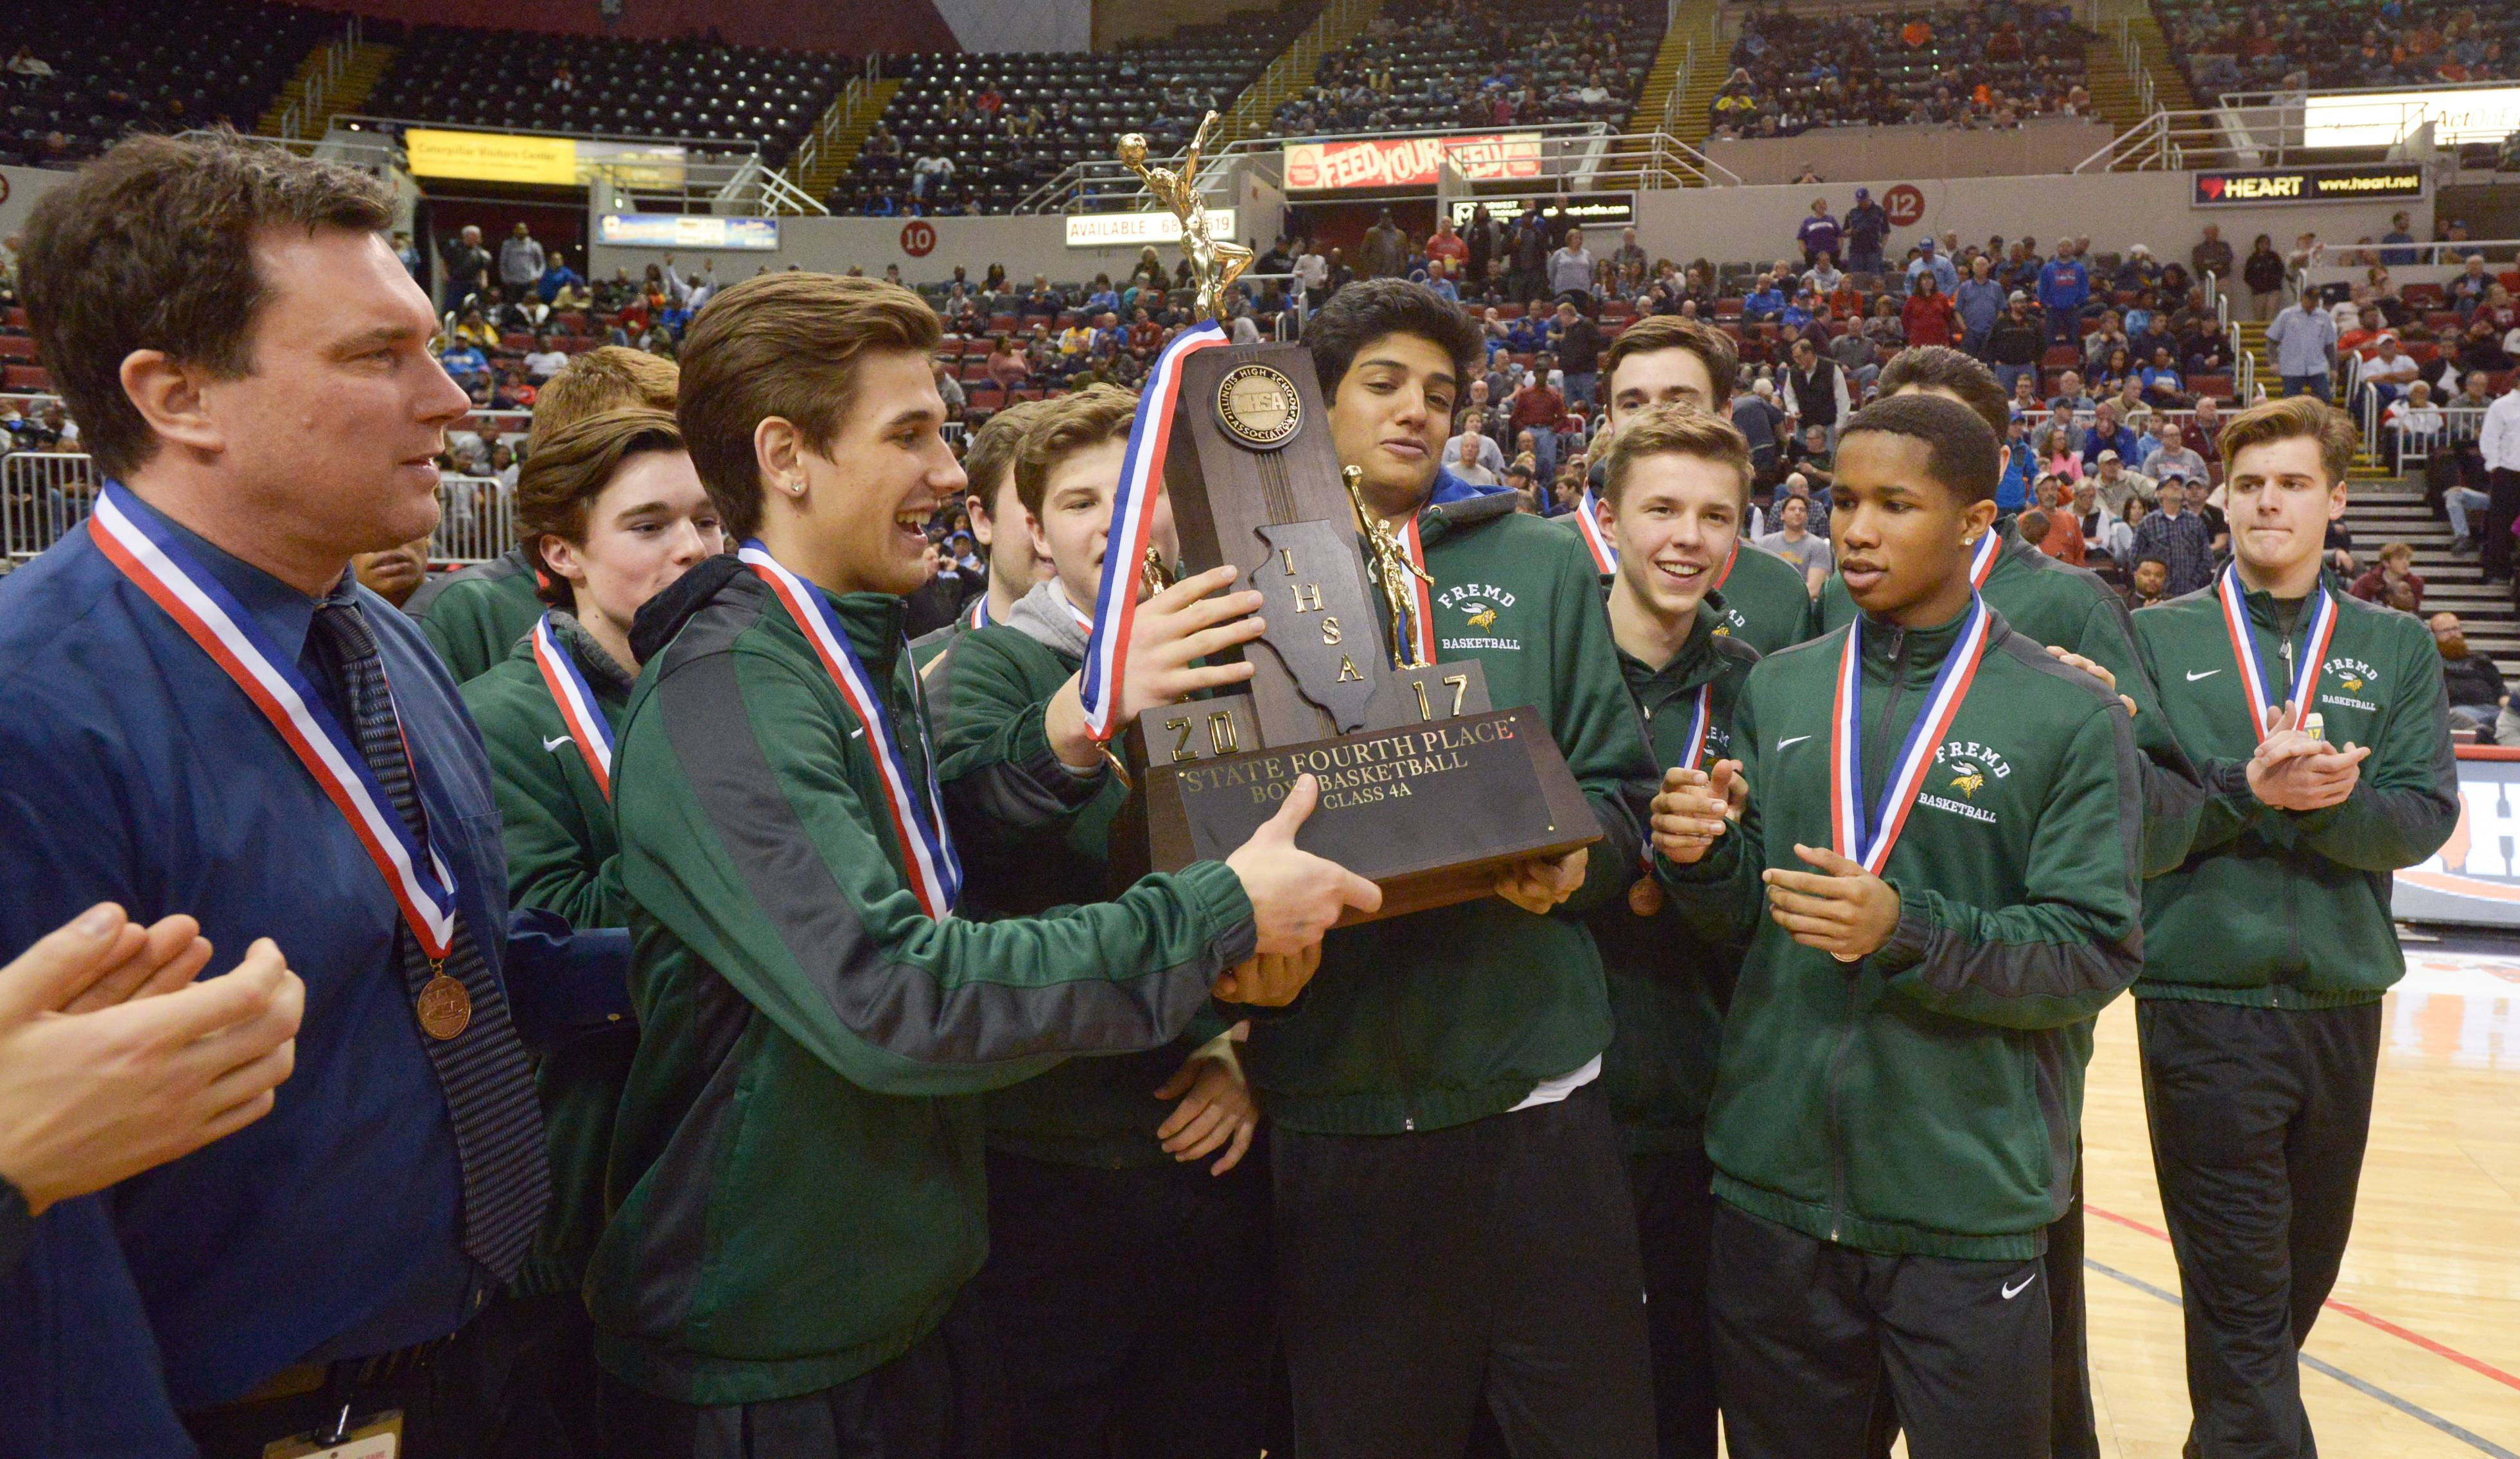 It's a fourth-place finish for Fremd